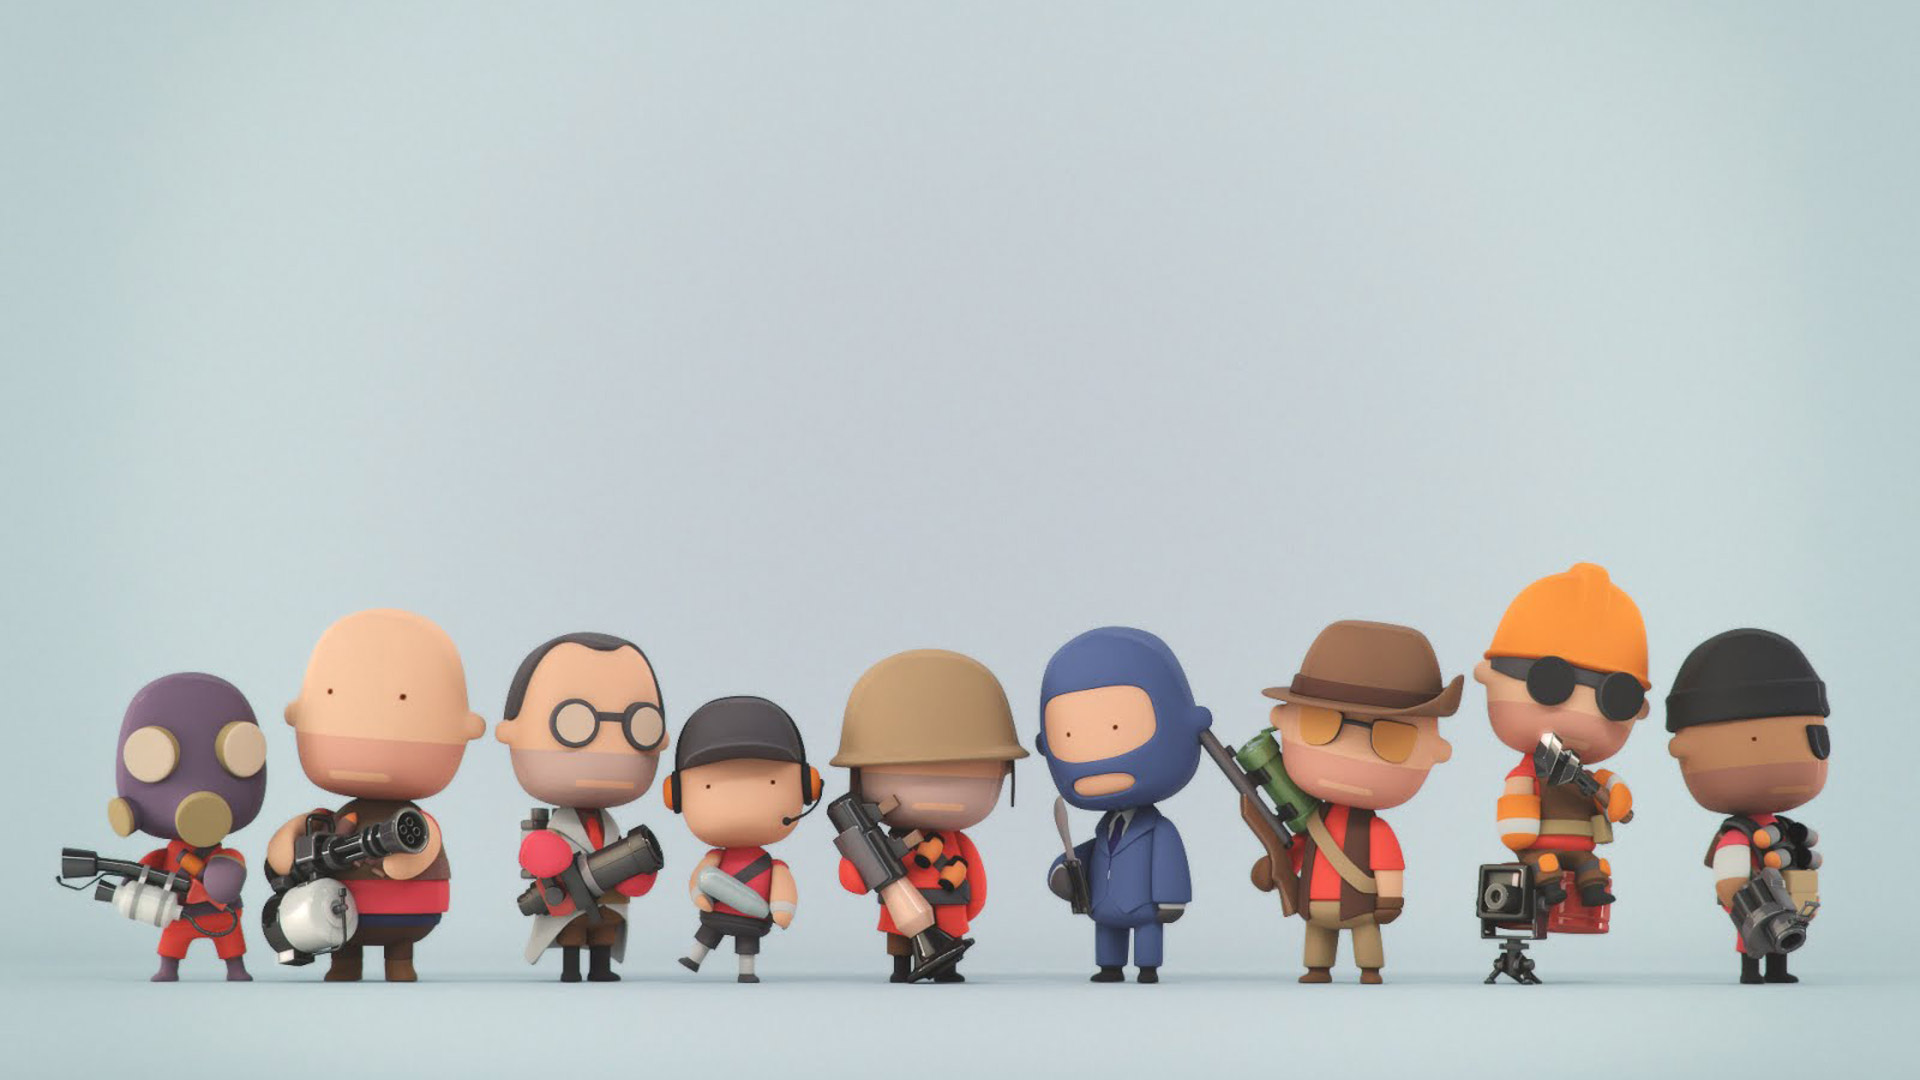 Team Fortress 2 Wallpapers Best Wallpapers HD Wallpapers Download Free Images Wallpaper [1000image.com]